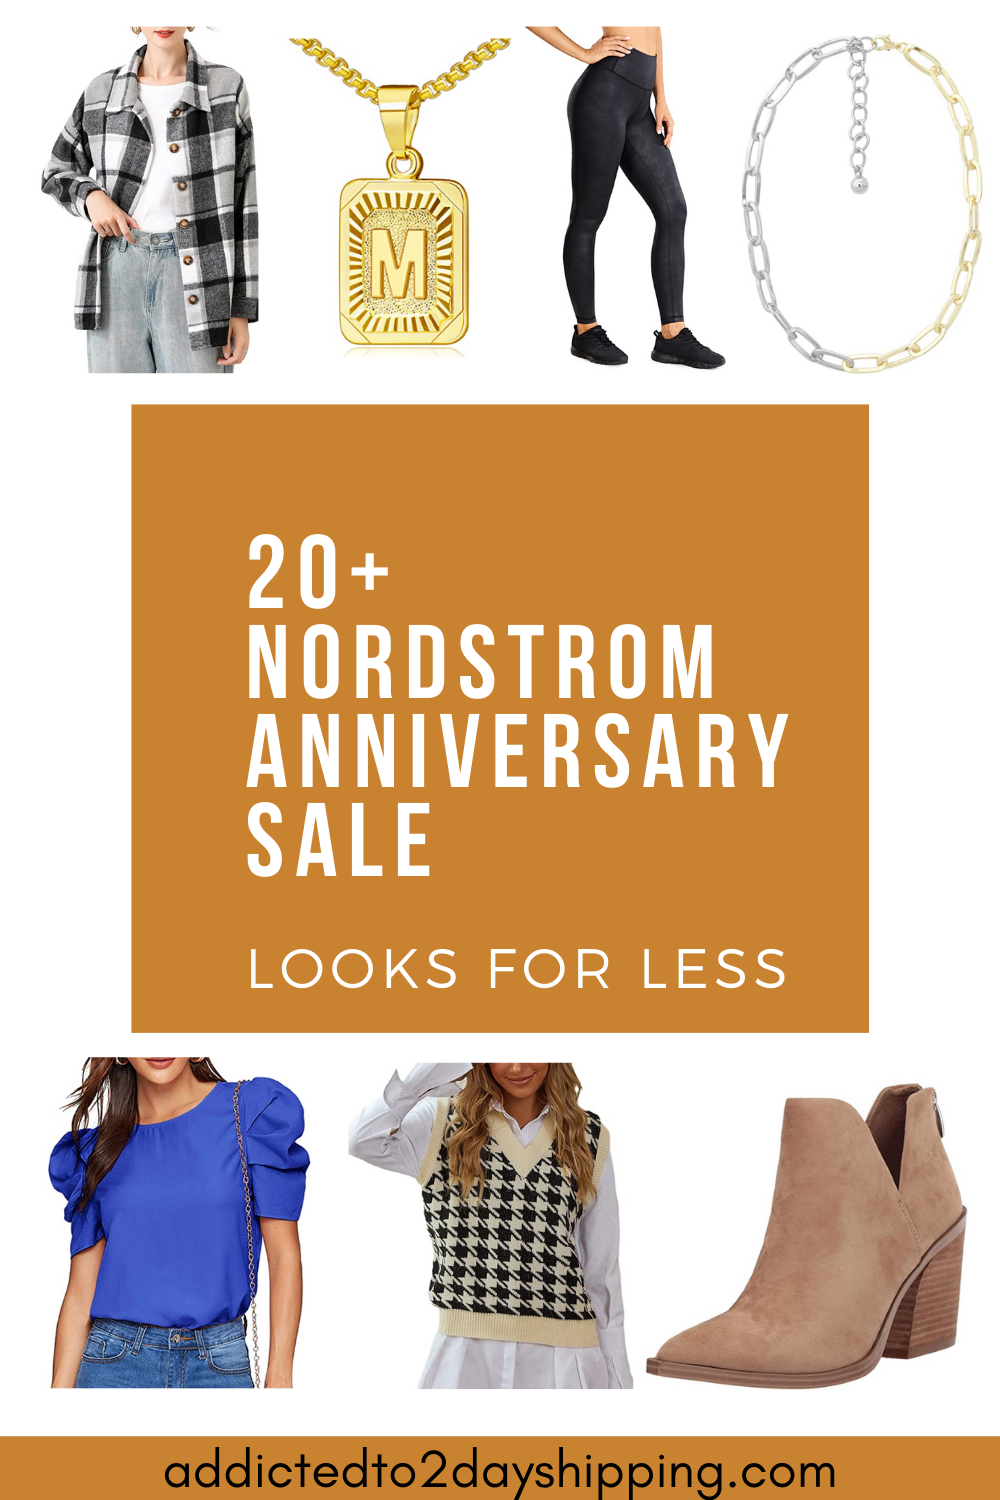 Nordstrom Sale – Looks For Less